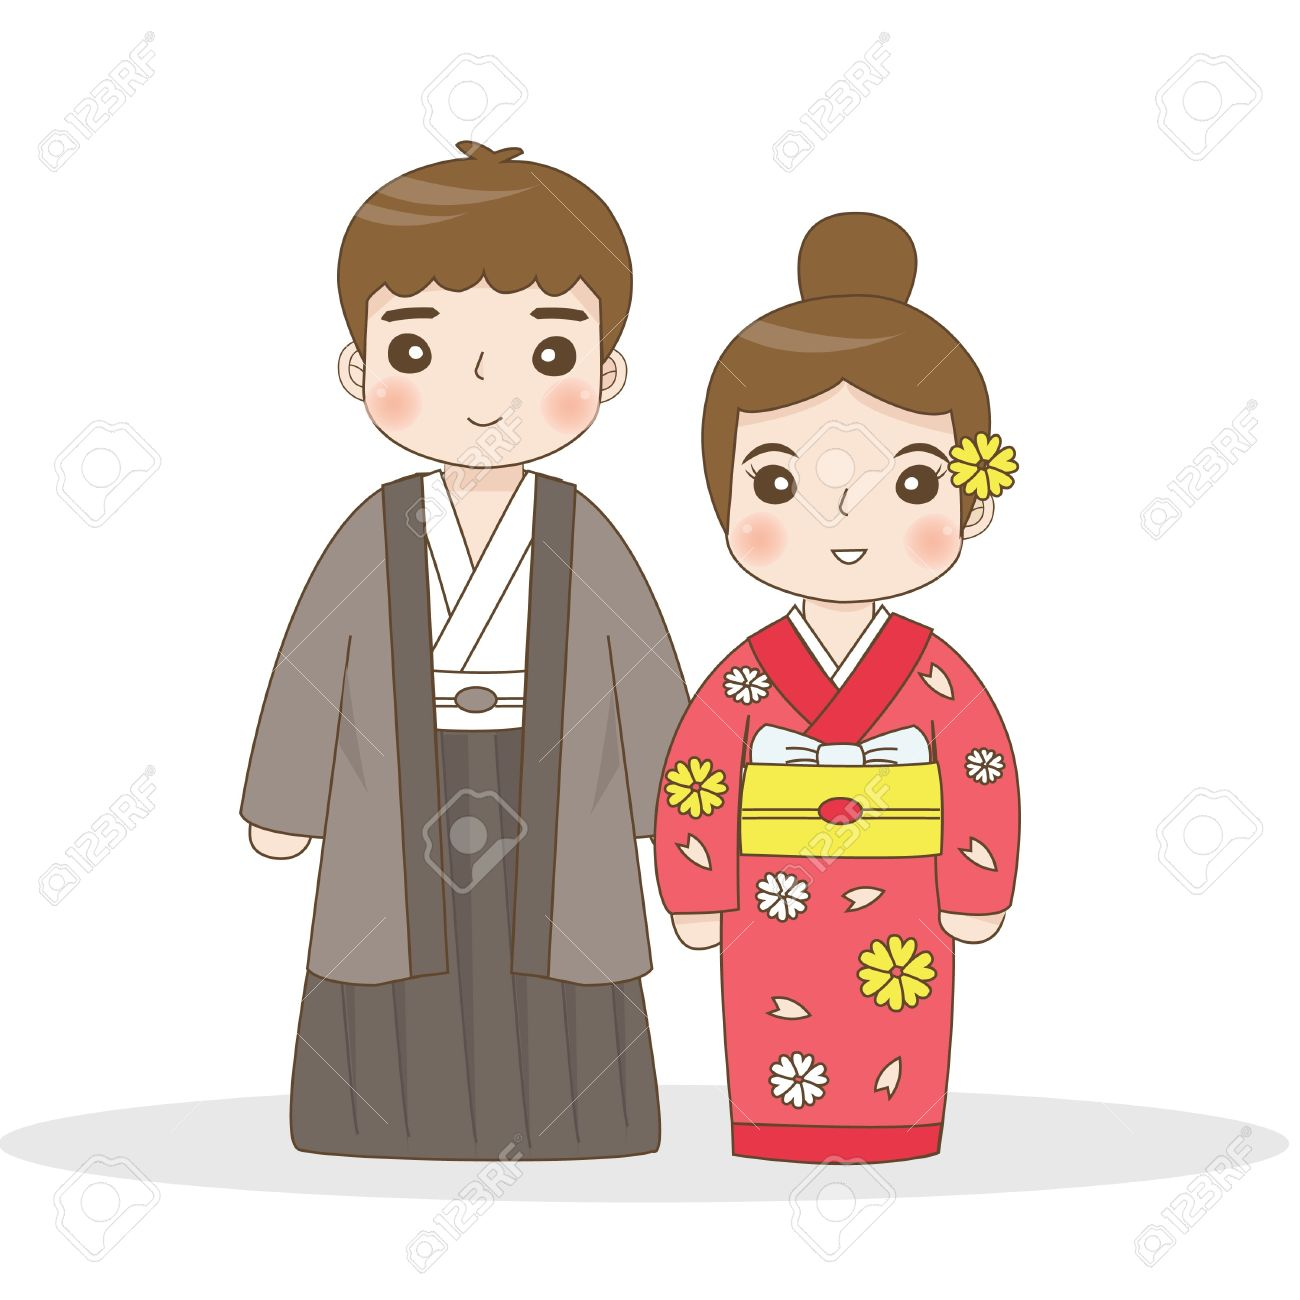 hight resolution of 1300x1300 japan clipart japanese child